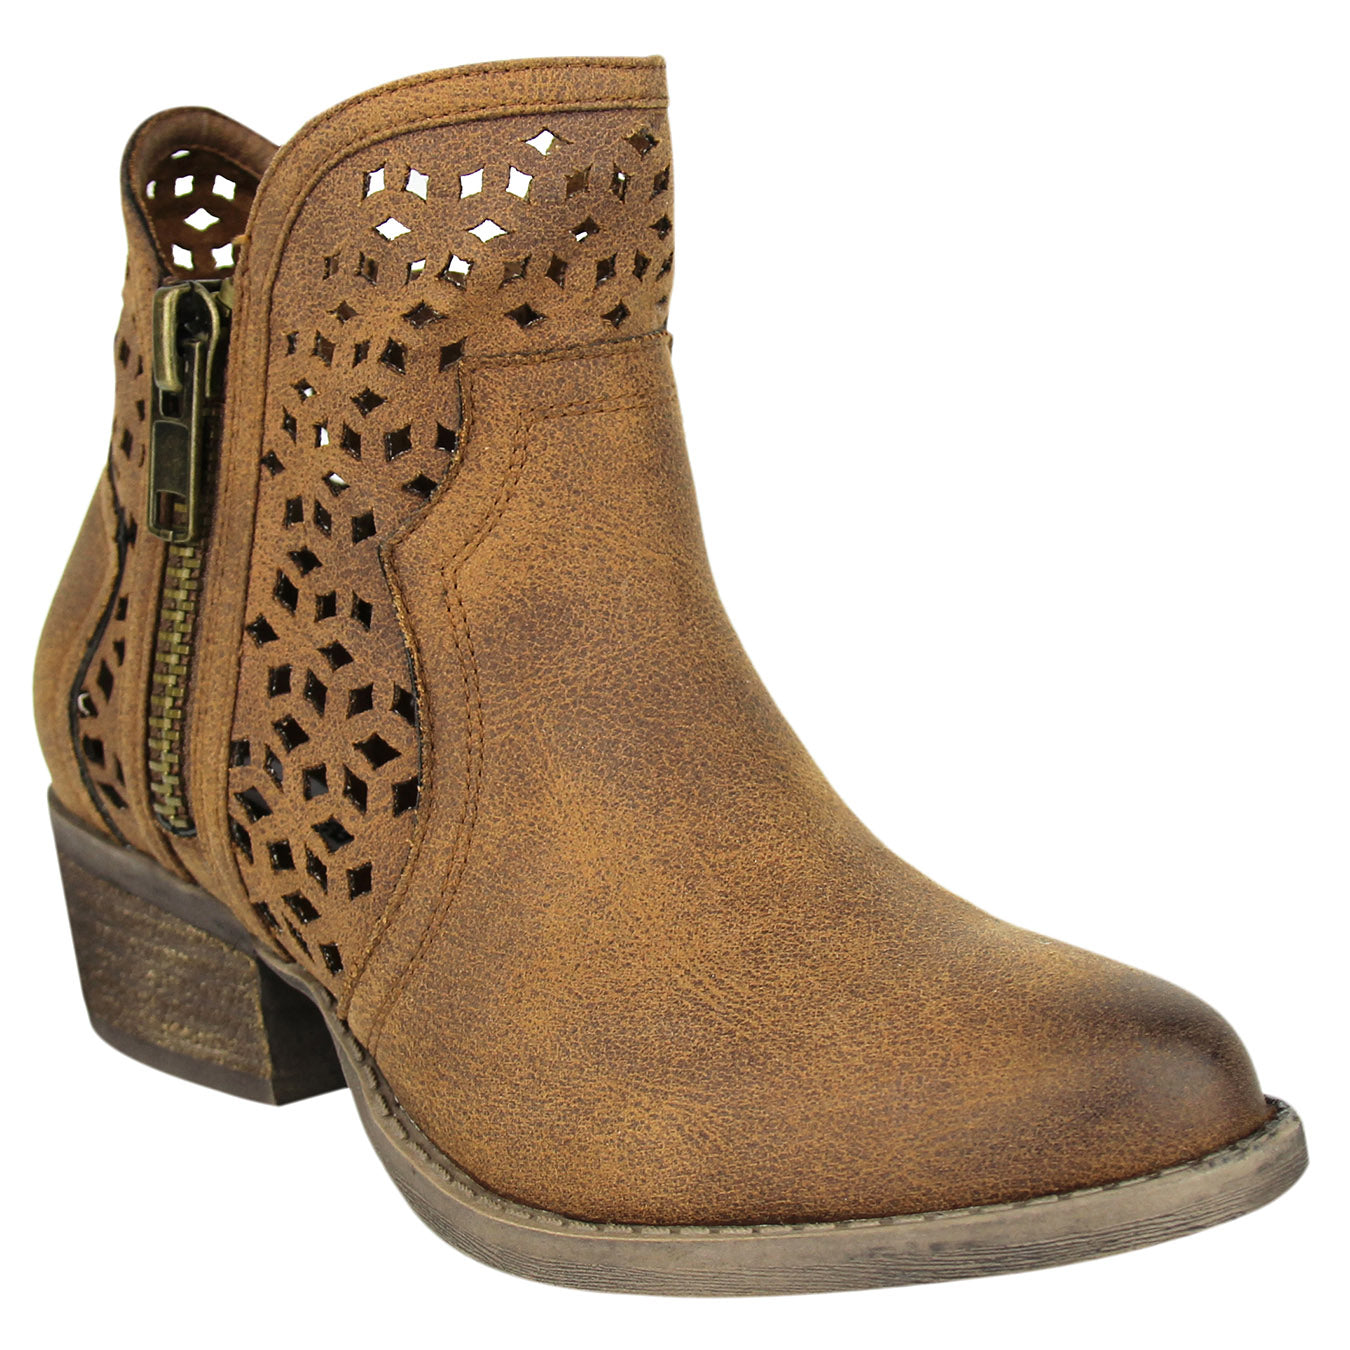 Not_Rated_Etta_women's_low-boot_laser-cut-out_zipper_heel-1.5inches_tan